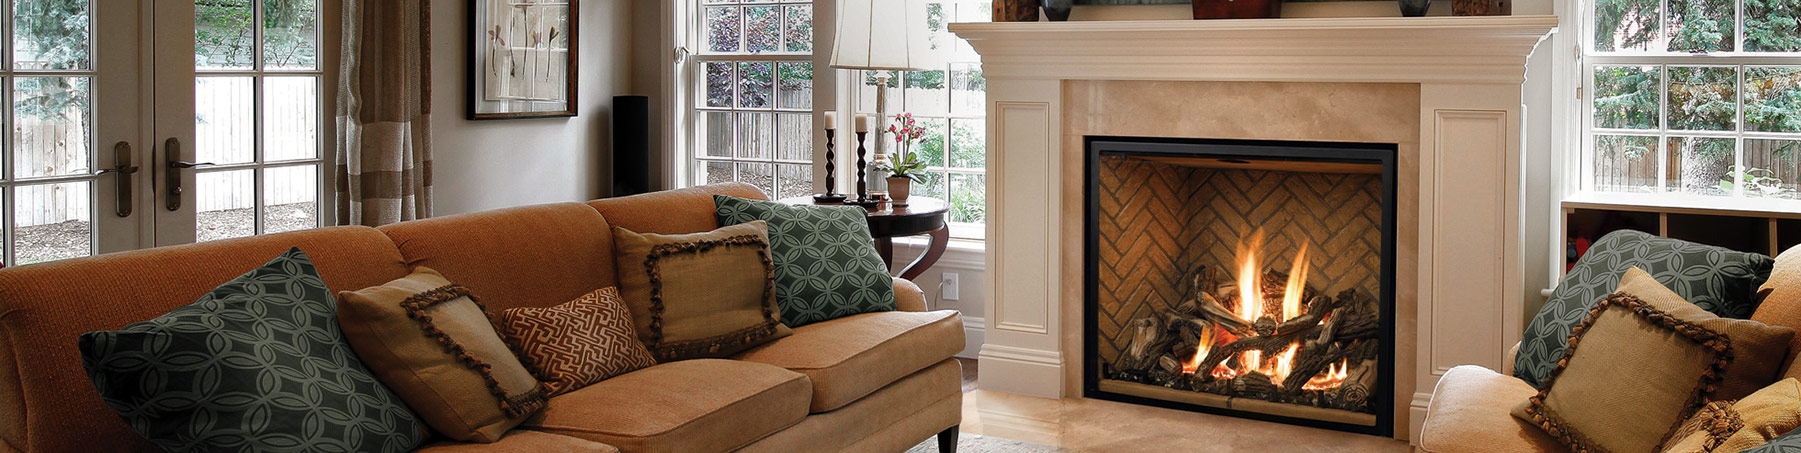 Chicago Fireplace & Patio Furniture Store Arlington